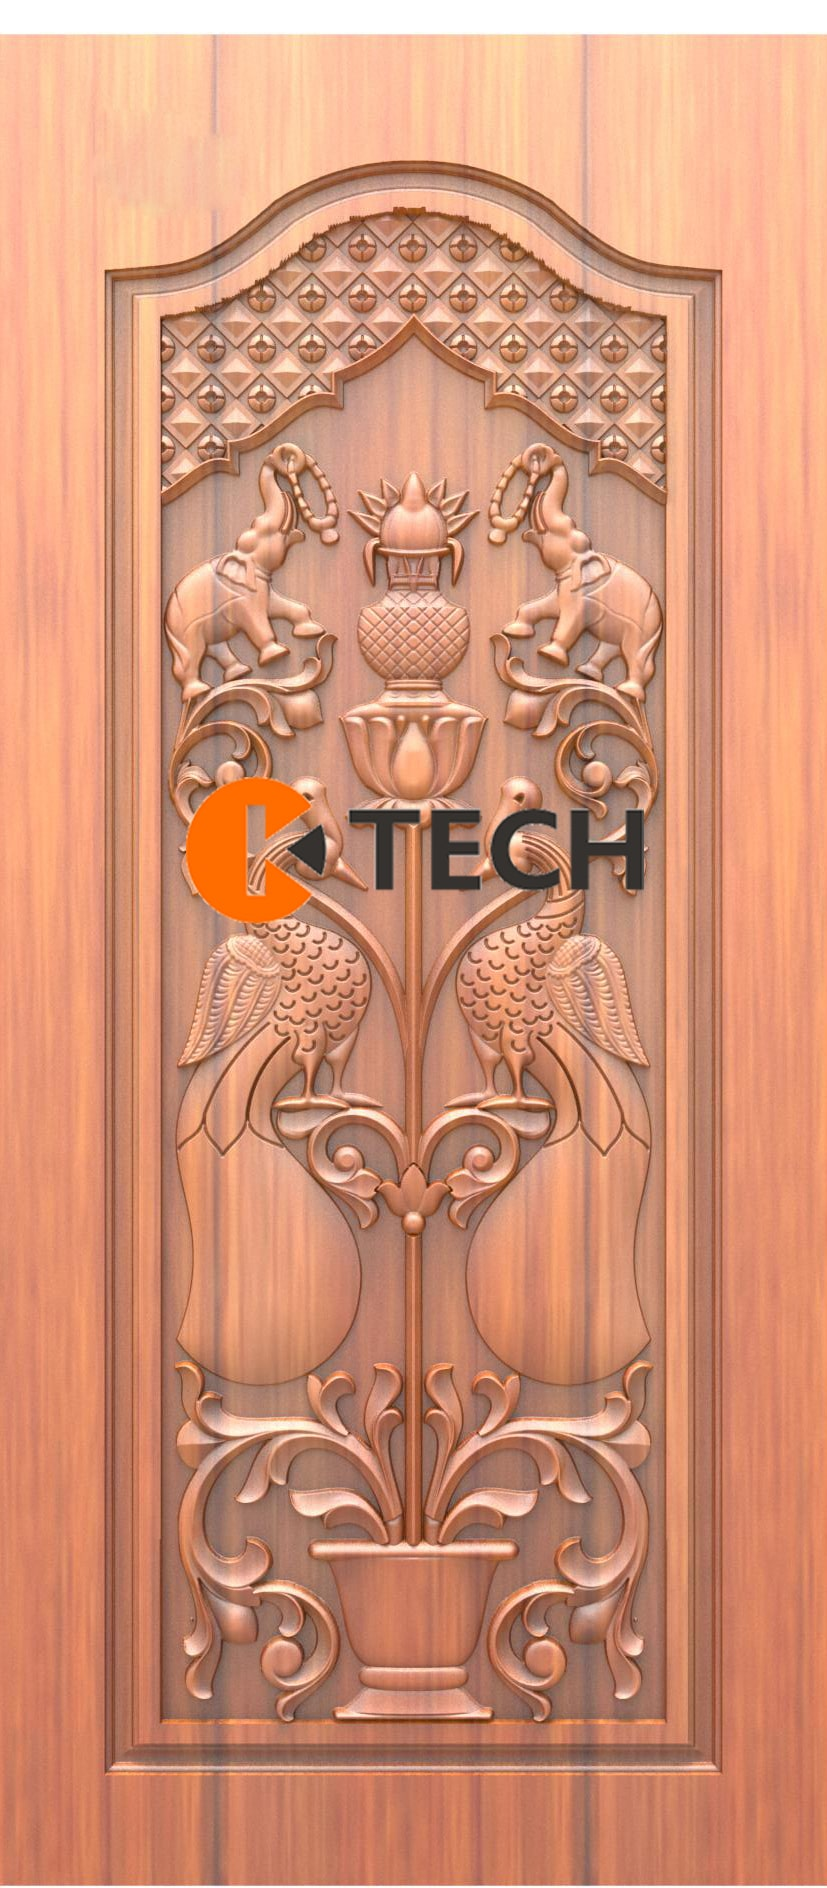 K-TECH CNC Doors Design 185